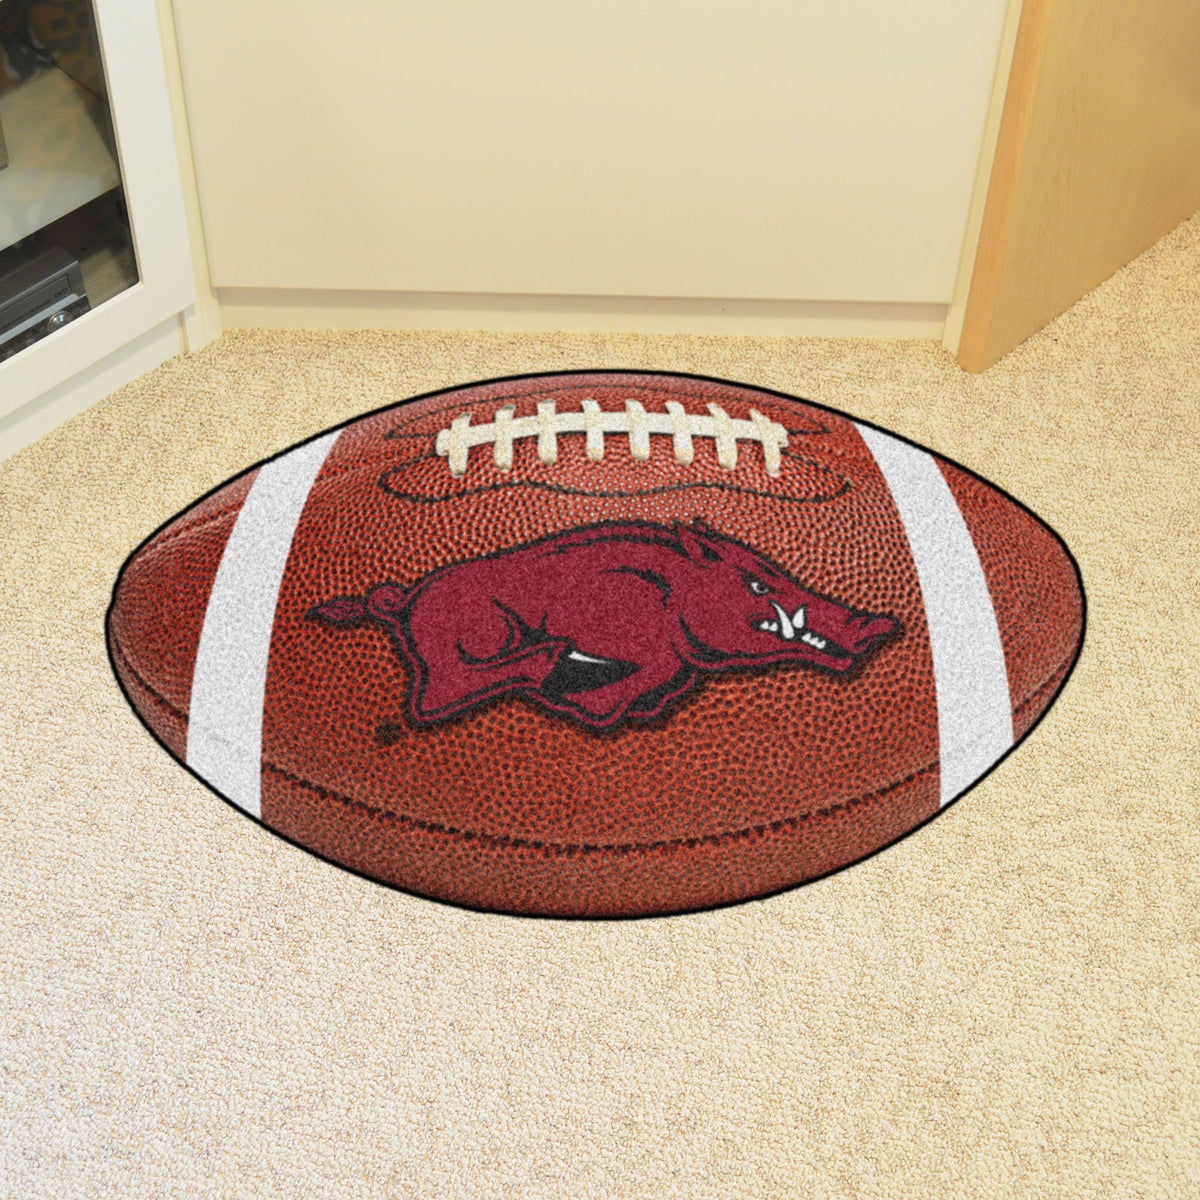 Collegiate - Football Mat: A - K Collegiate Mats, Rectangular Mats, Football Mat, Collegiate, Home Fan Mats Arkansas